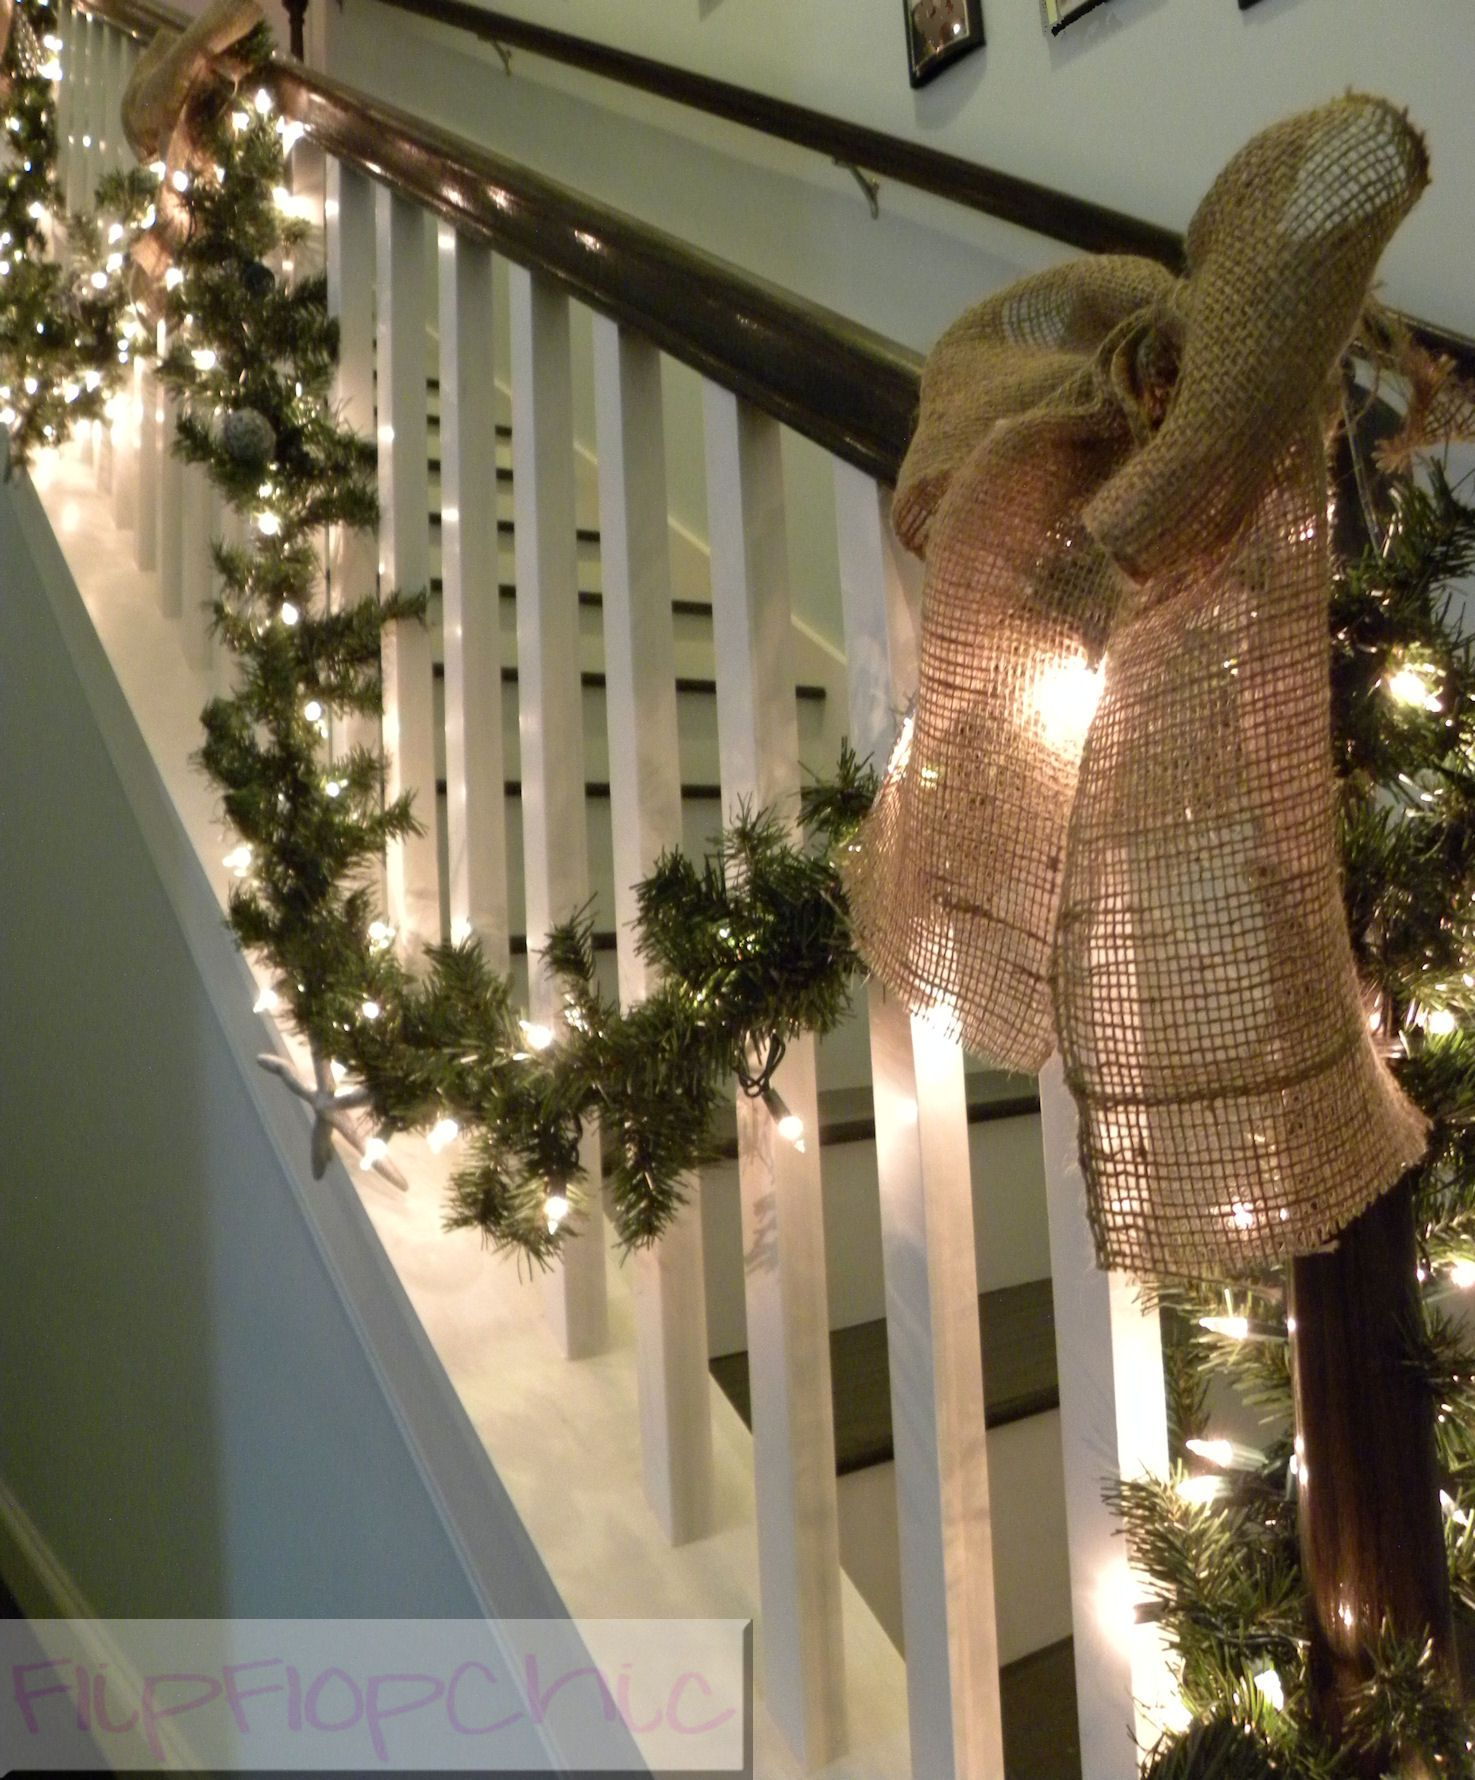 Holiday decorating · @Shawna Goertz This one is so nice and simple! Burlap Bow Banister Christmas Decor & Shawna Goertz This one is so nice and simple! Burlap Bow Banister ...